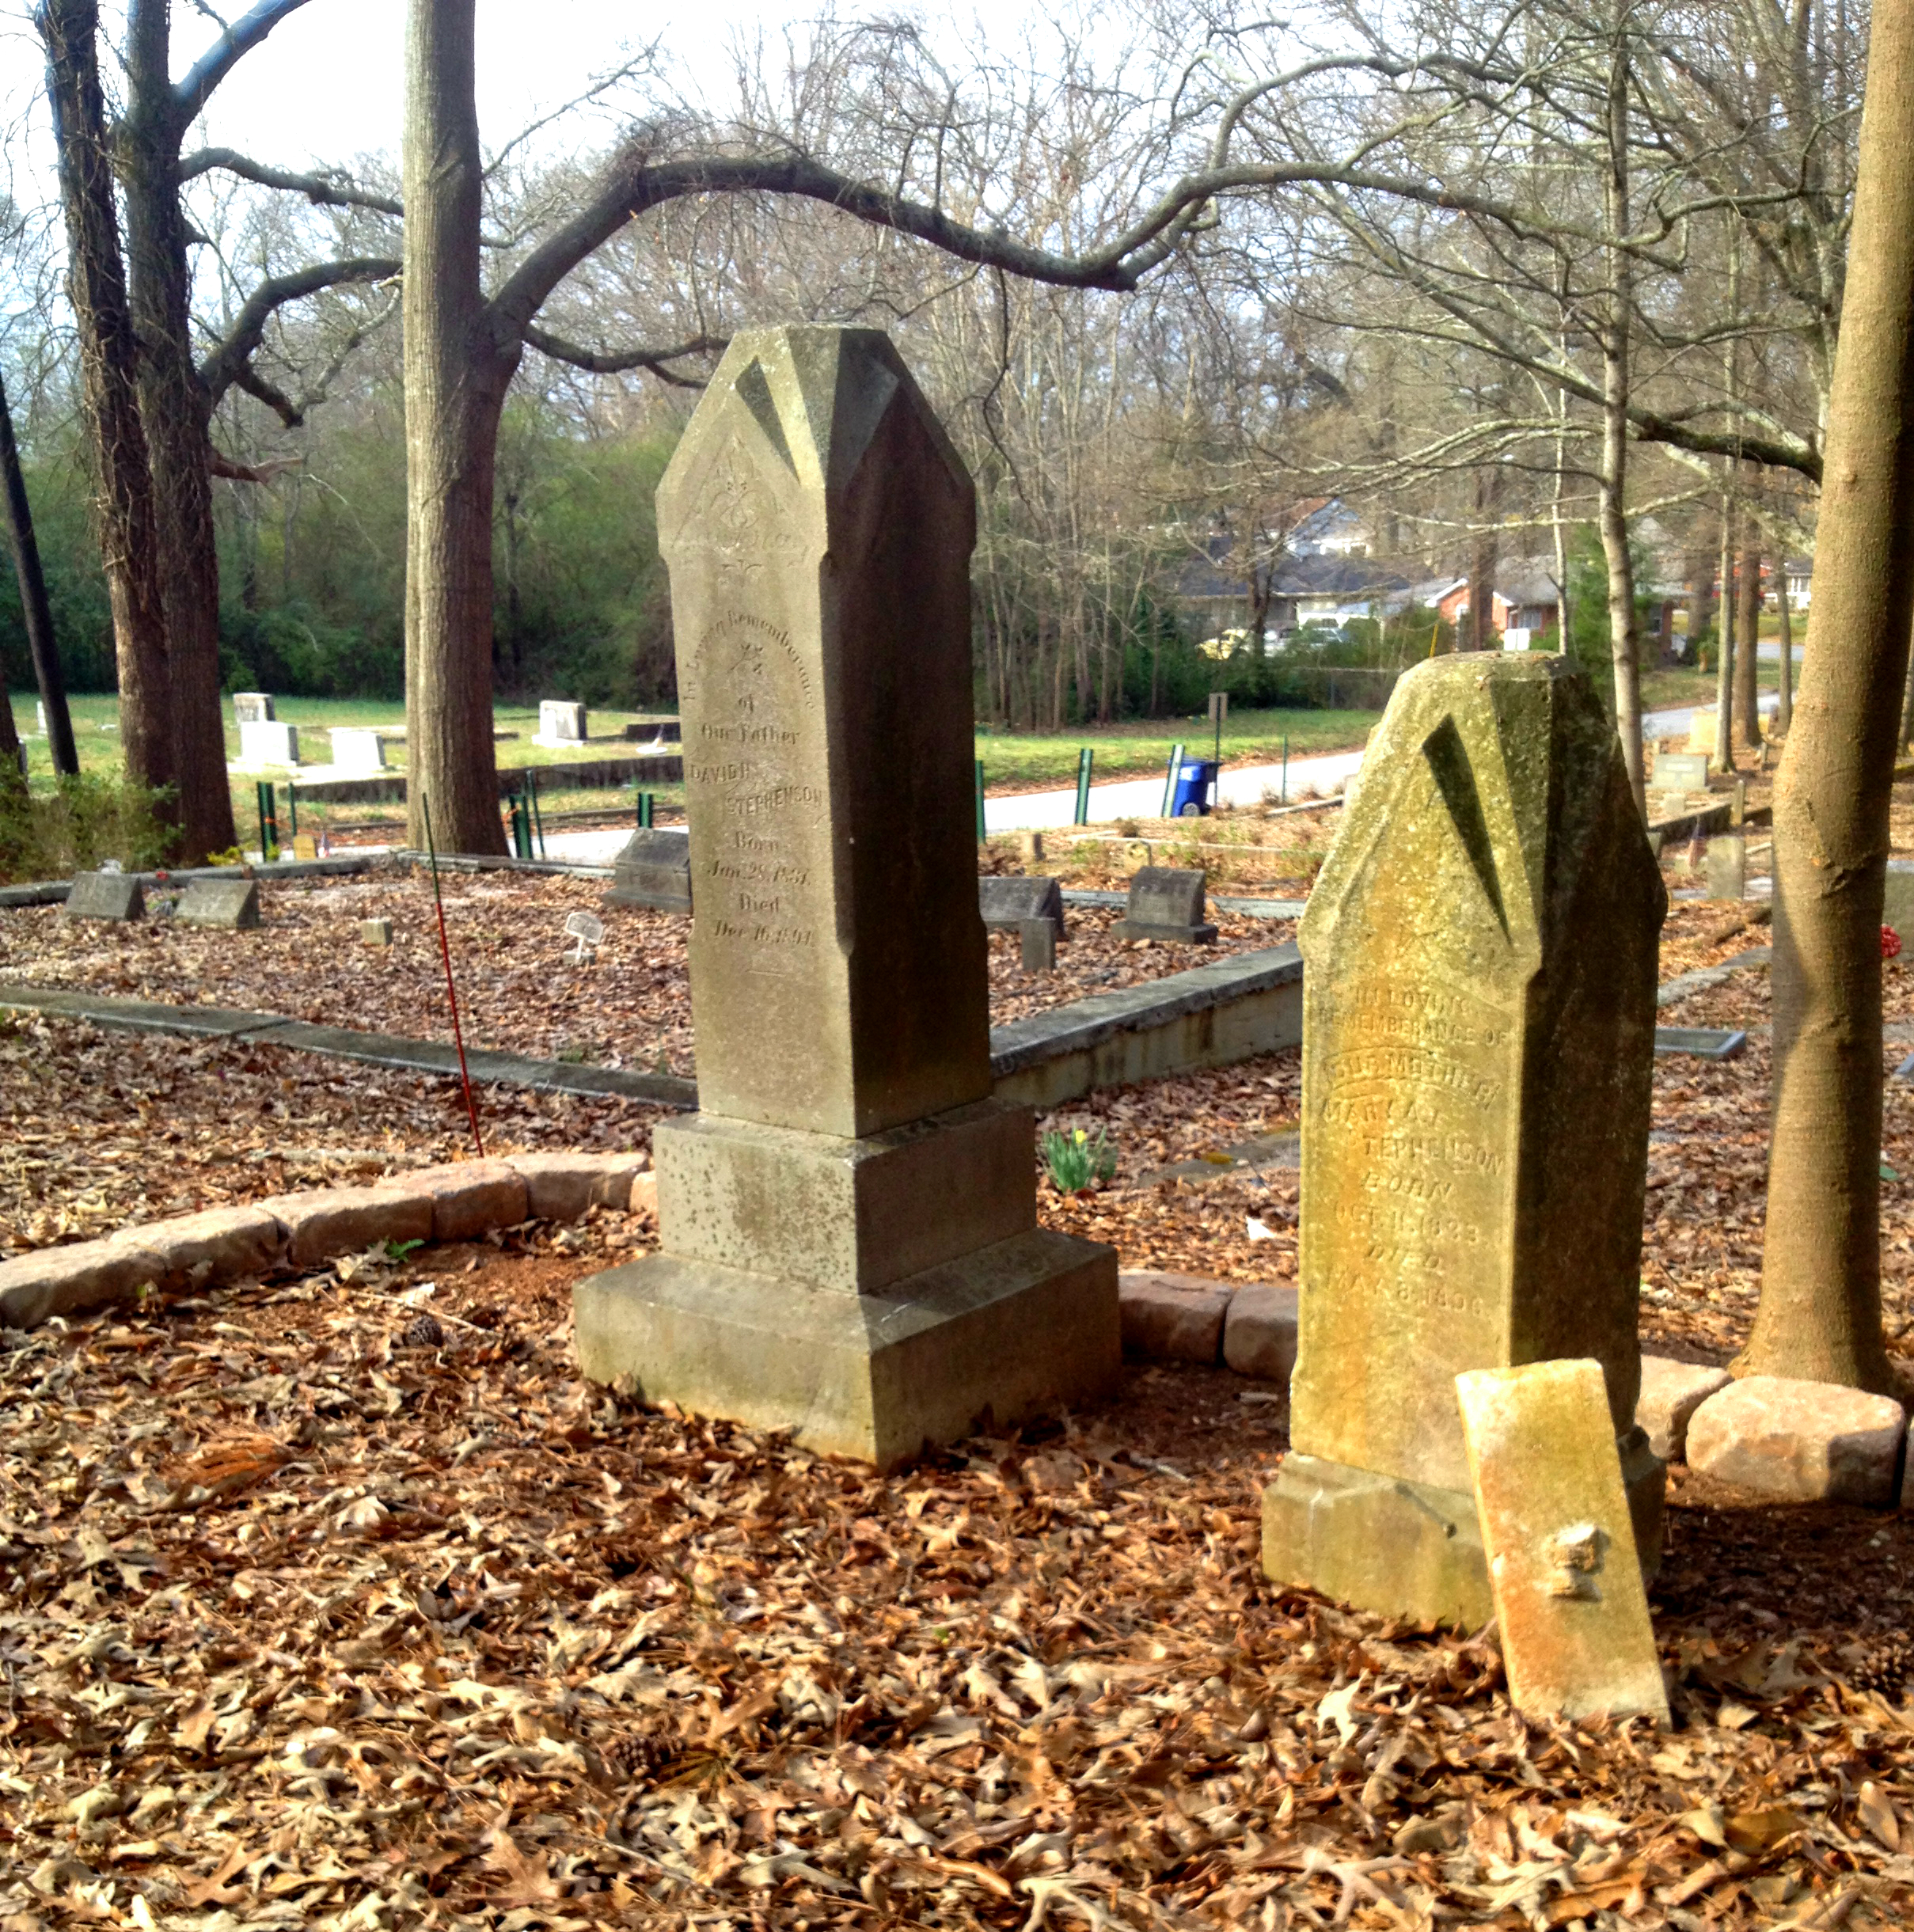 David Stephenson (Left) died in 1894 and Mary Stephenson (Right) died in 1896 in Sylvester Cemetery in East Atlanta - History Atlanta 2014